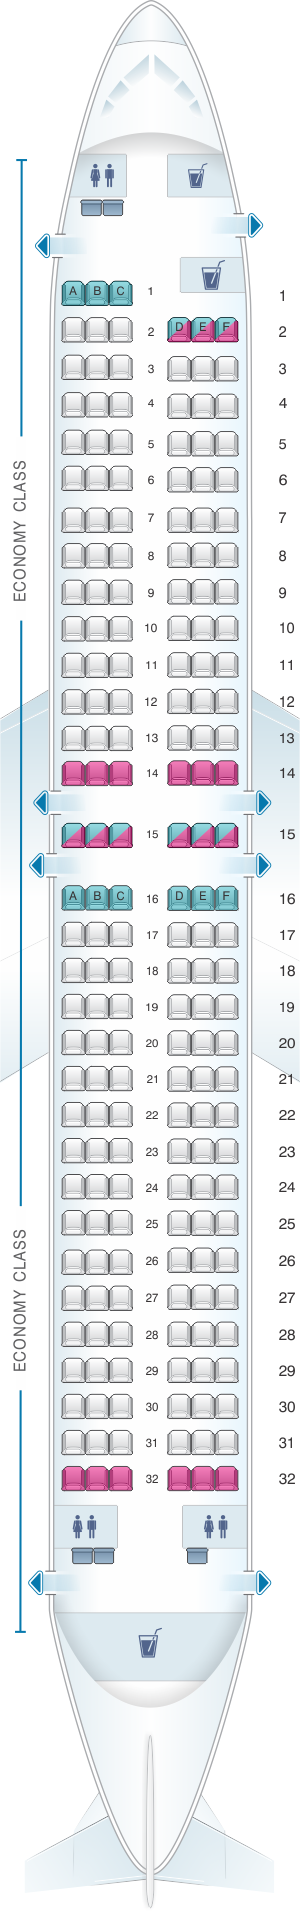 Seat map for Rossiya Airlines Boeing B737 800 189PAX V1